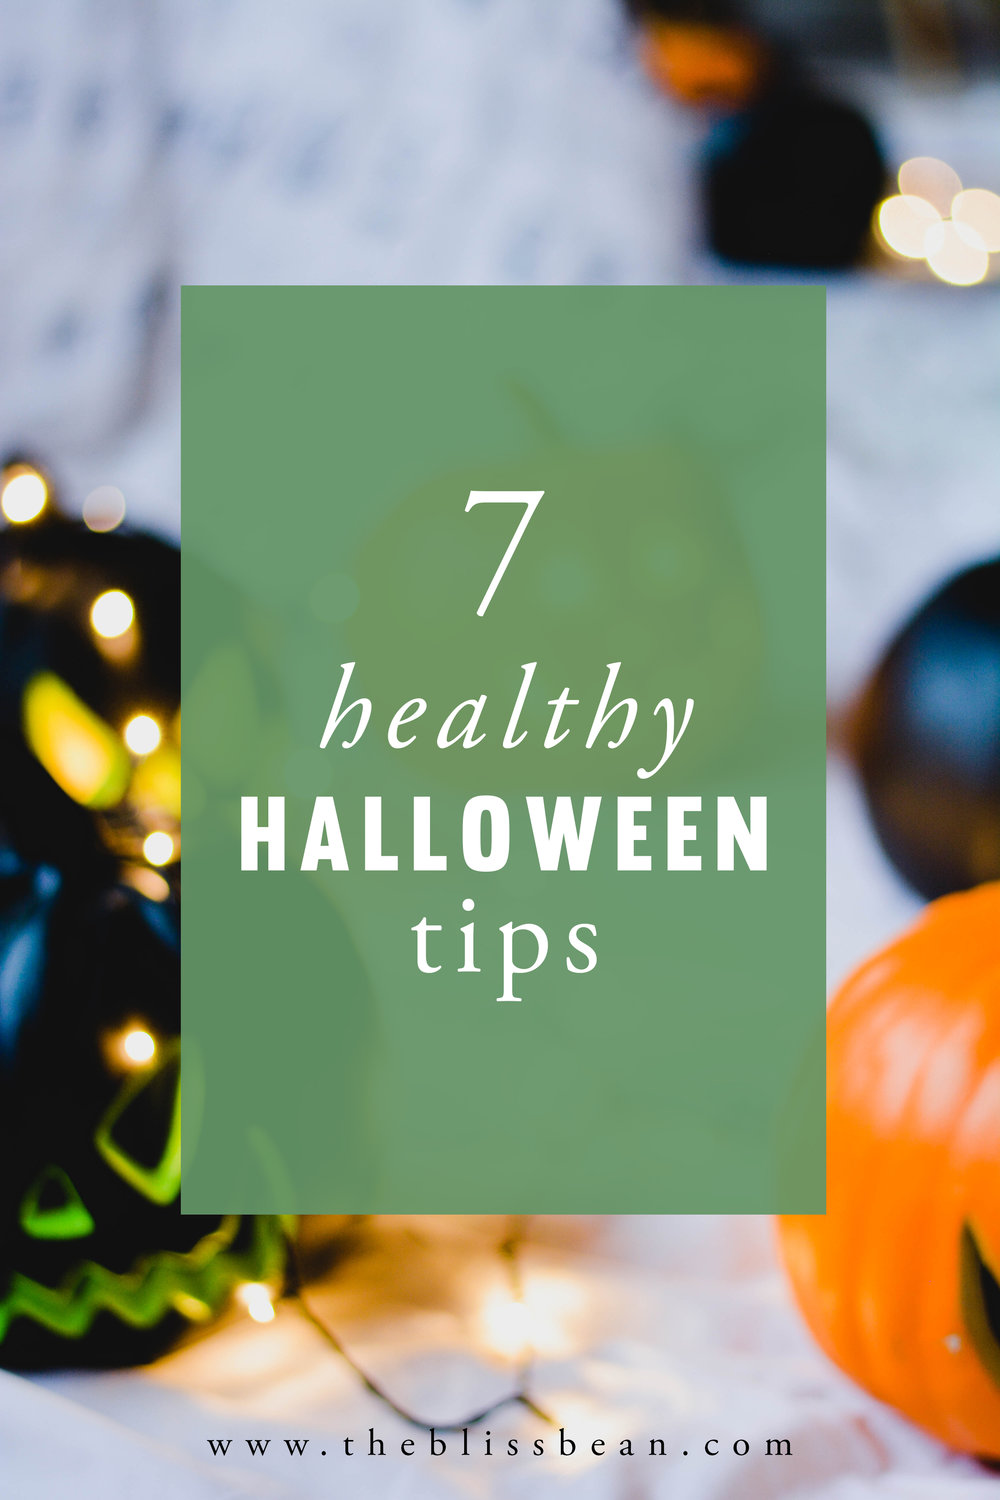 Healthy Halloween Tips Cover Photo.jpg